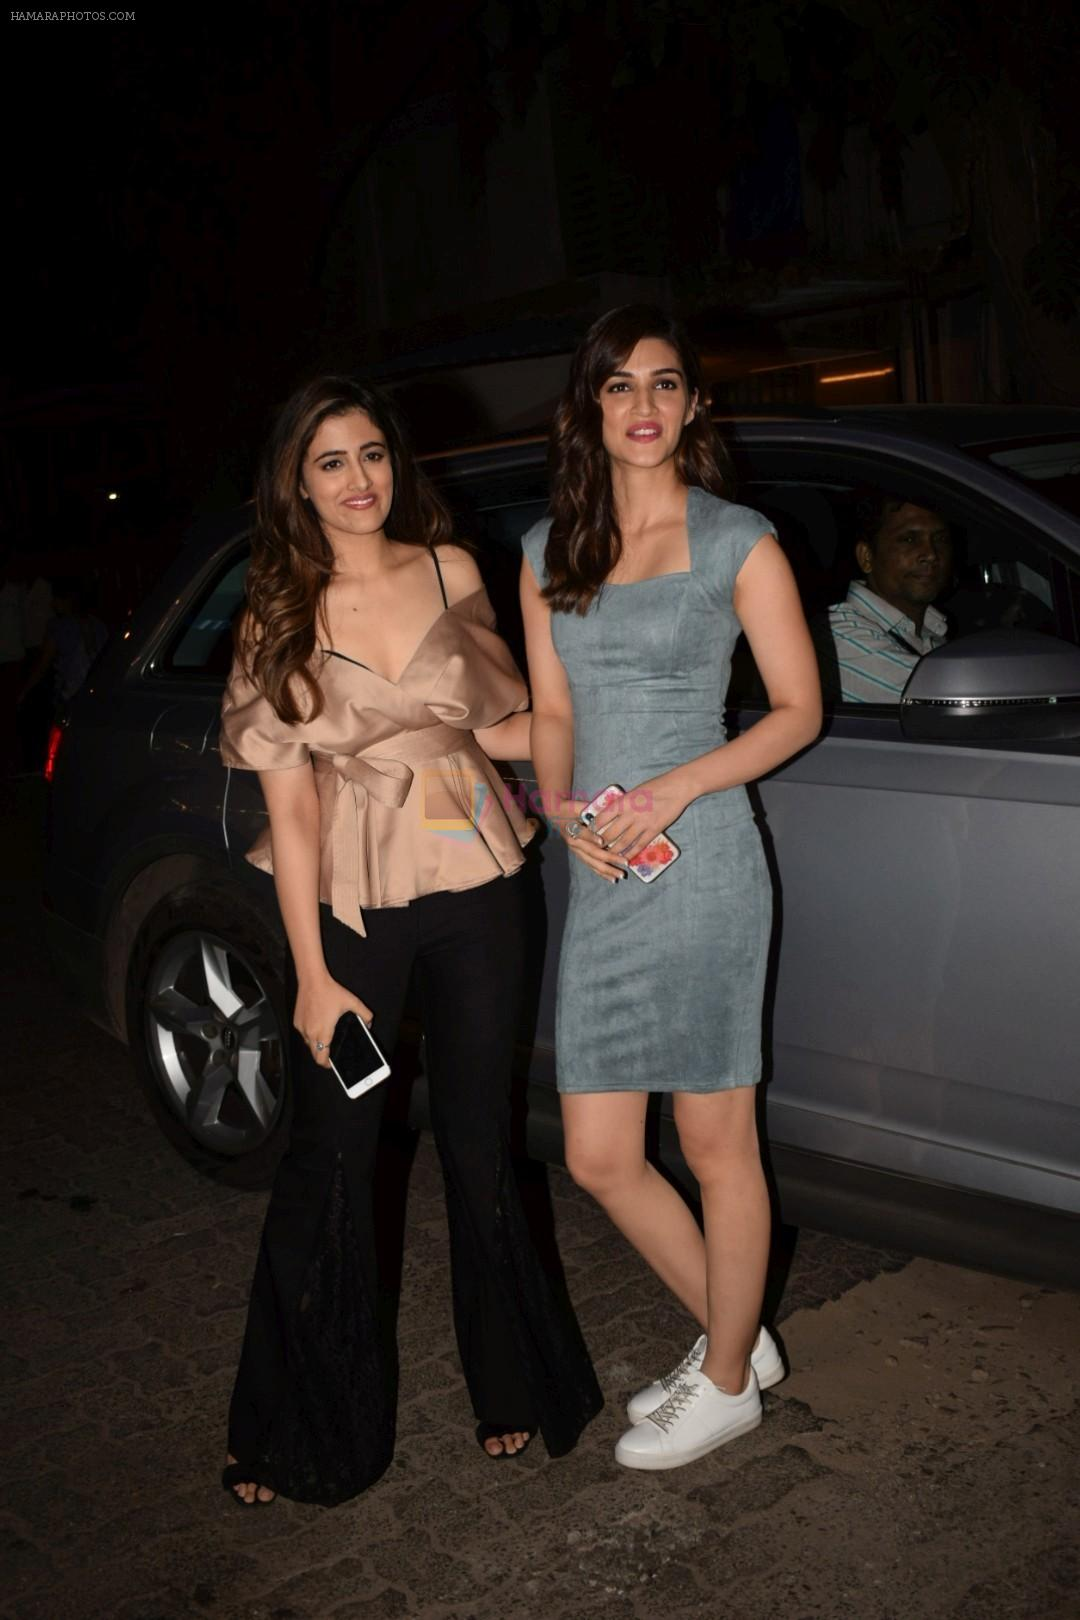 Kriti Sanon, Nupur Sanon at Mukesh chhabra's birthday party on 26th May 2018